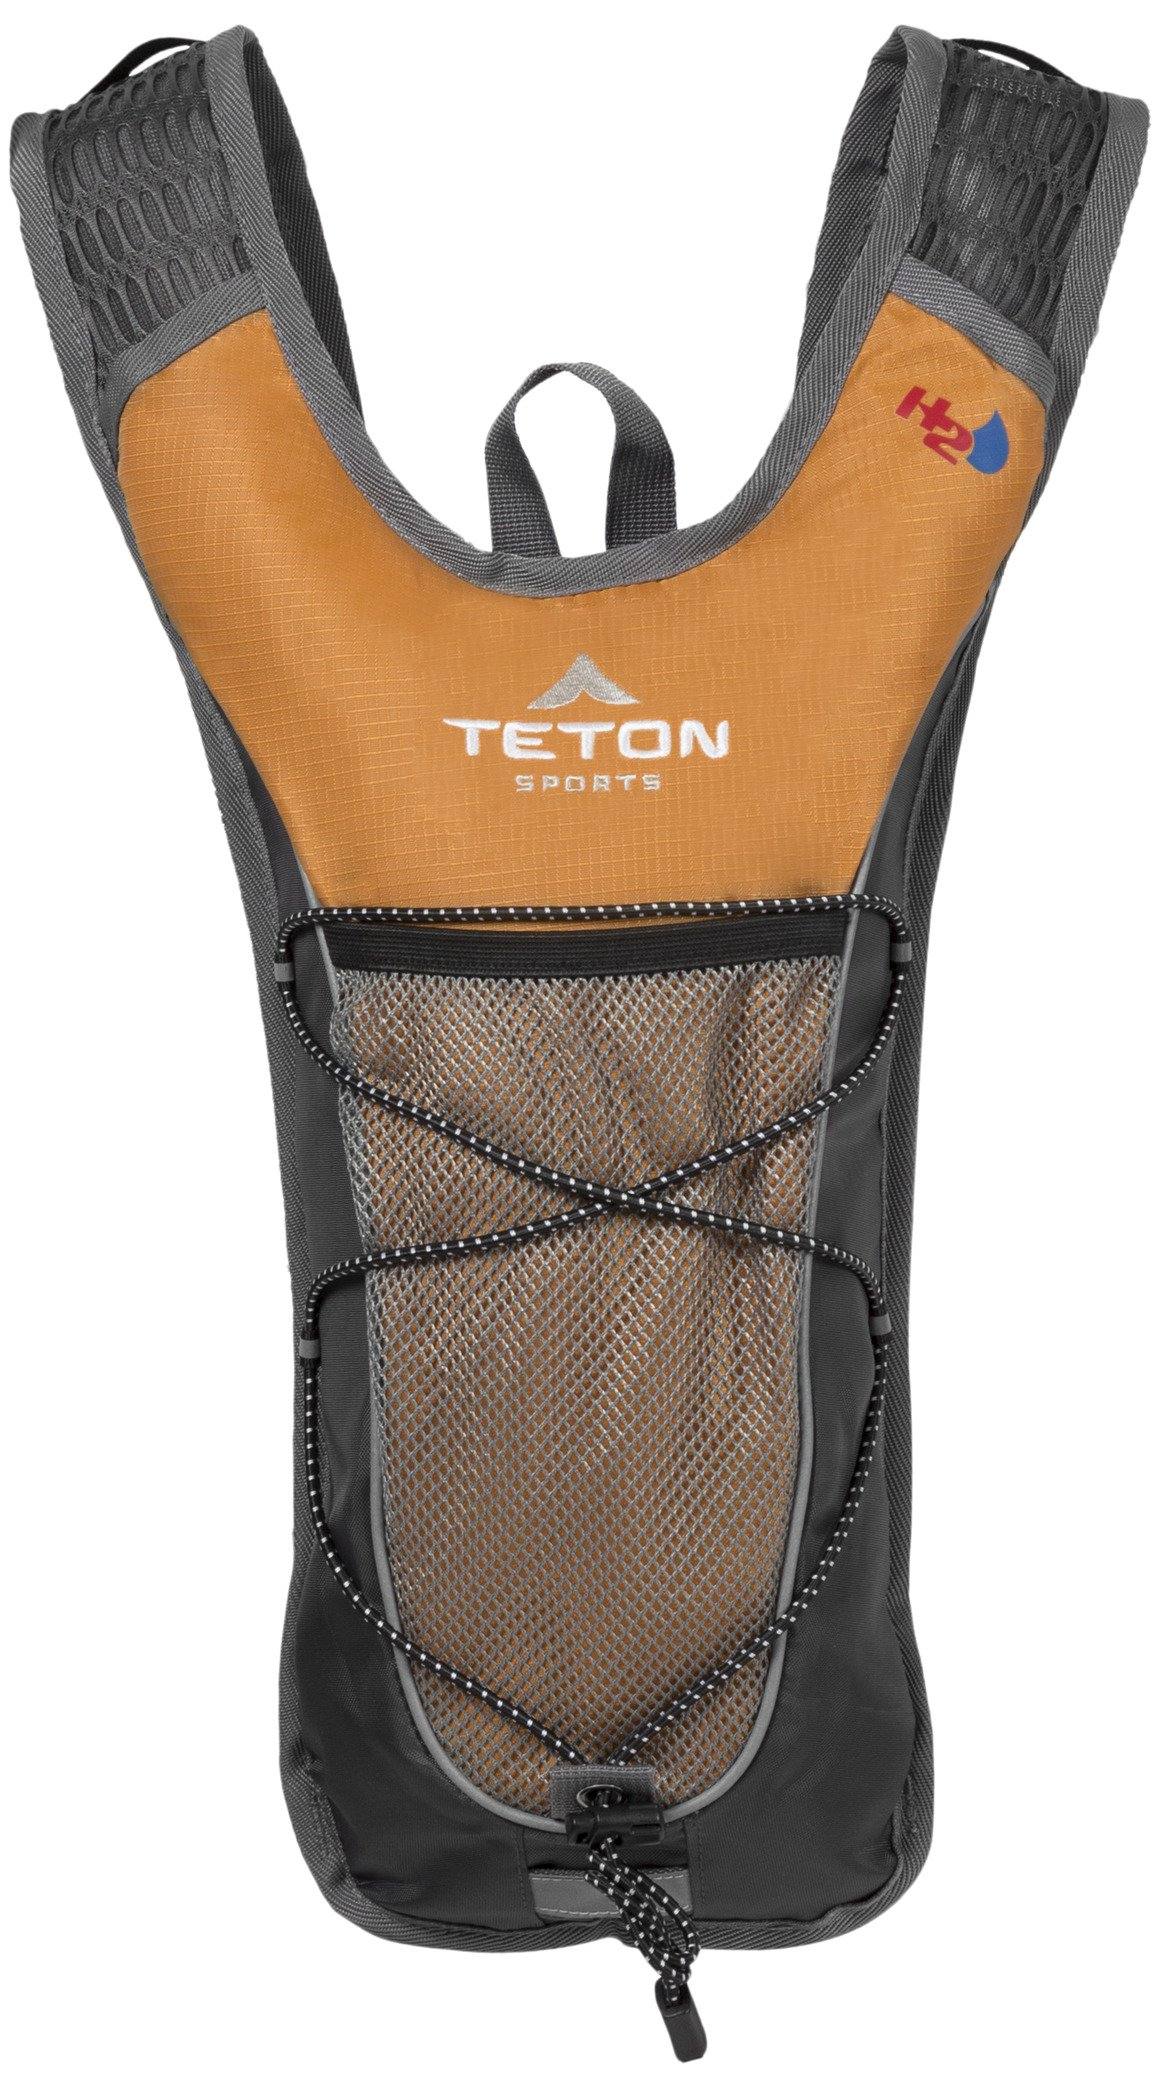 TETON Sports TrailRunner 2.0 Hydration Pack; Backpack for Hiking, Running and Cycling; Free 2-Liter Hydration Bladder; Orange by TETON Sports